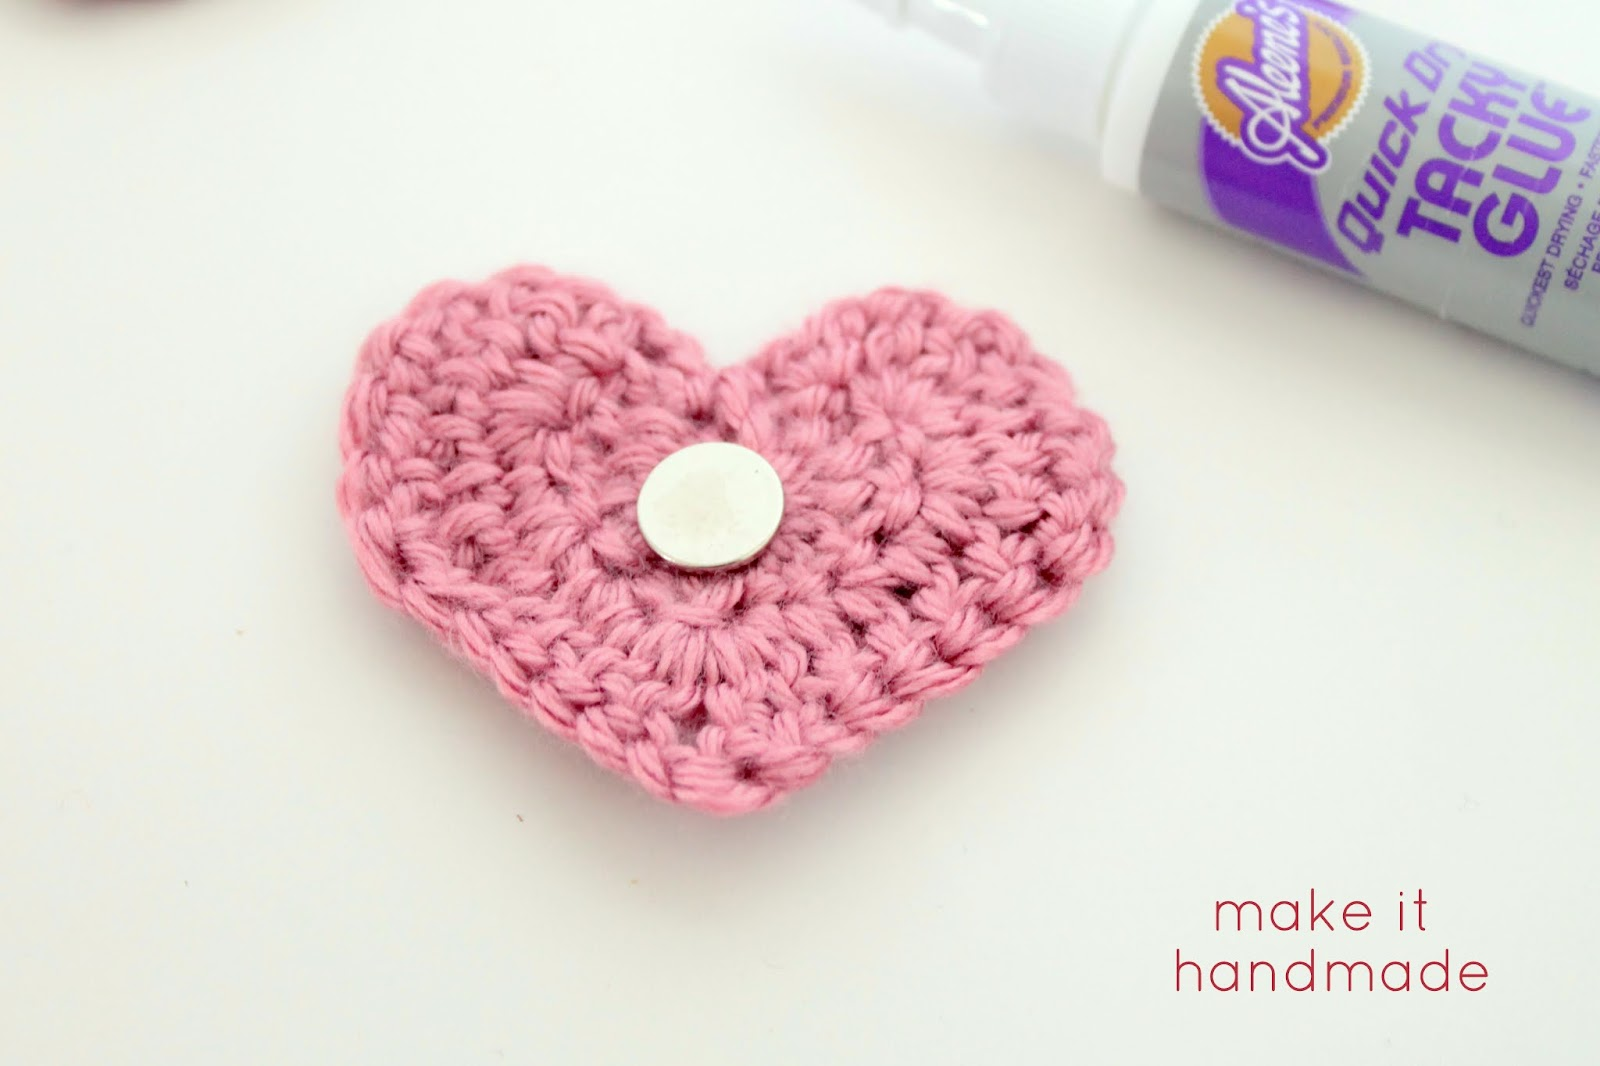 Make it handmade crochet heart magnets crochet heart magnets tutorial by make it handmade bankloansurffo Images